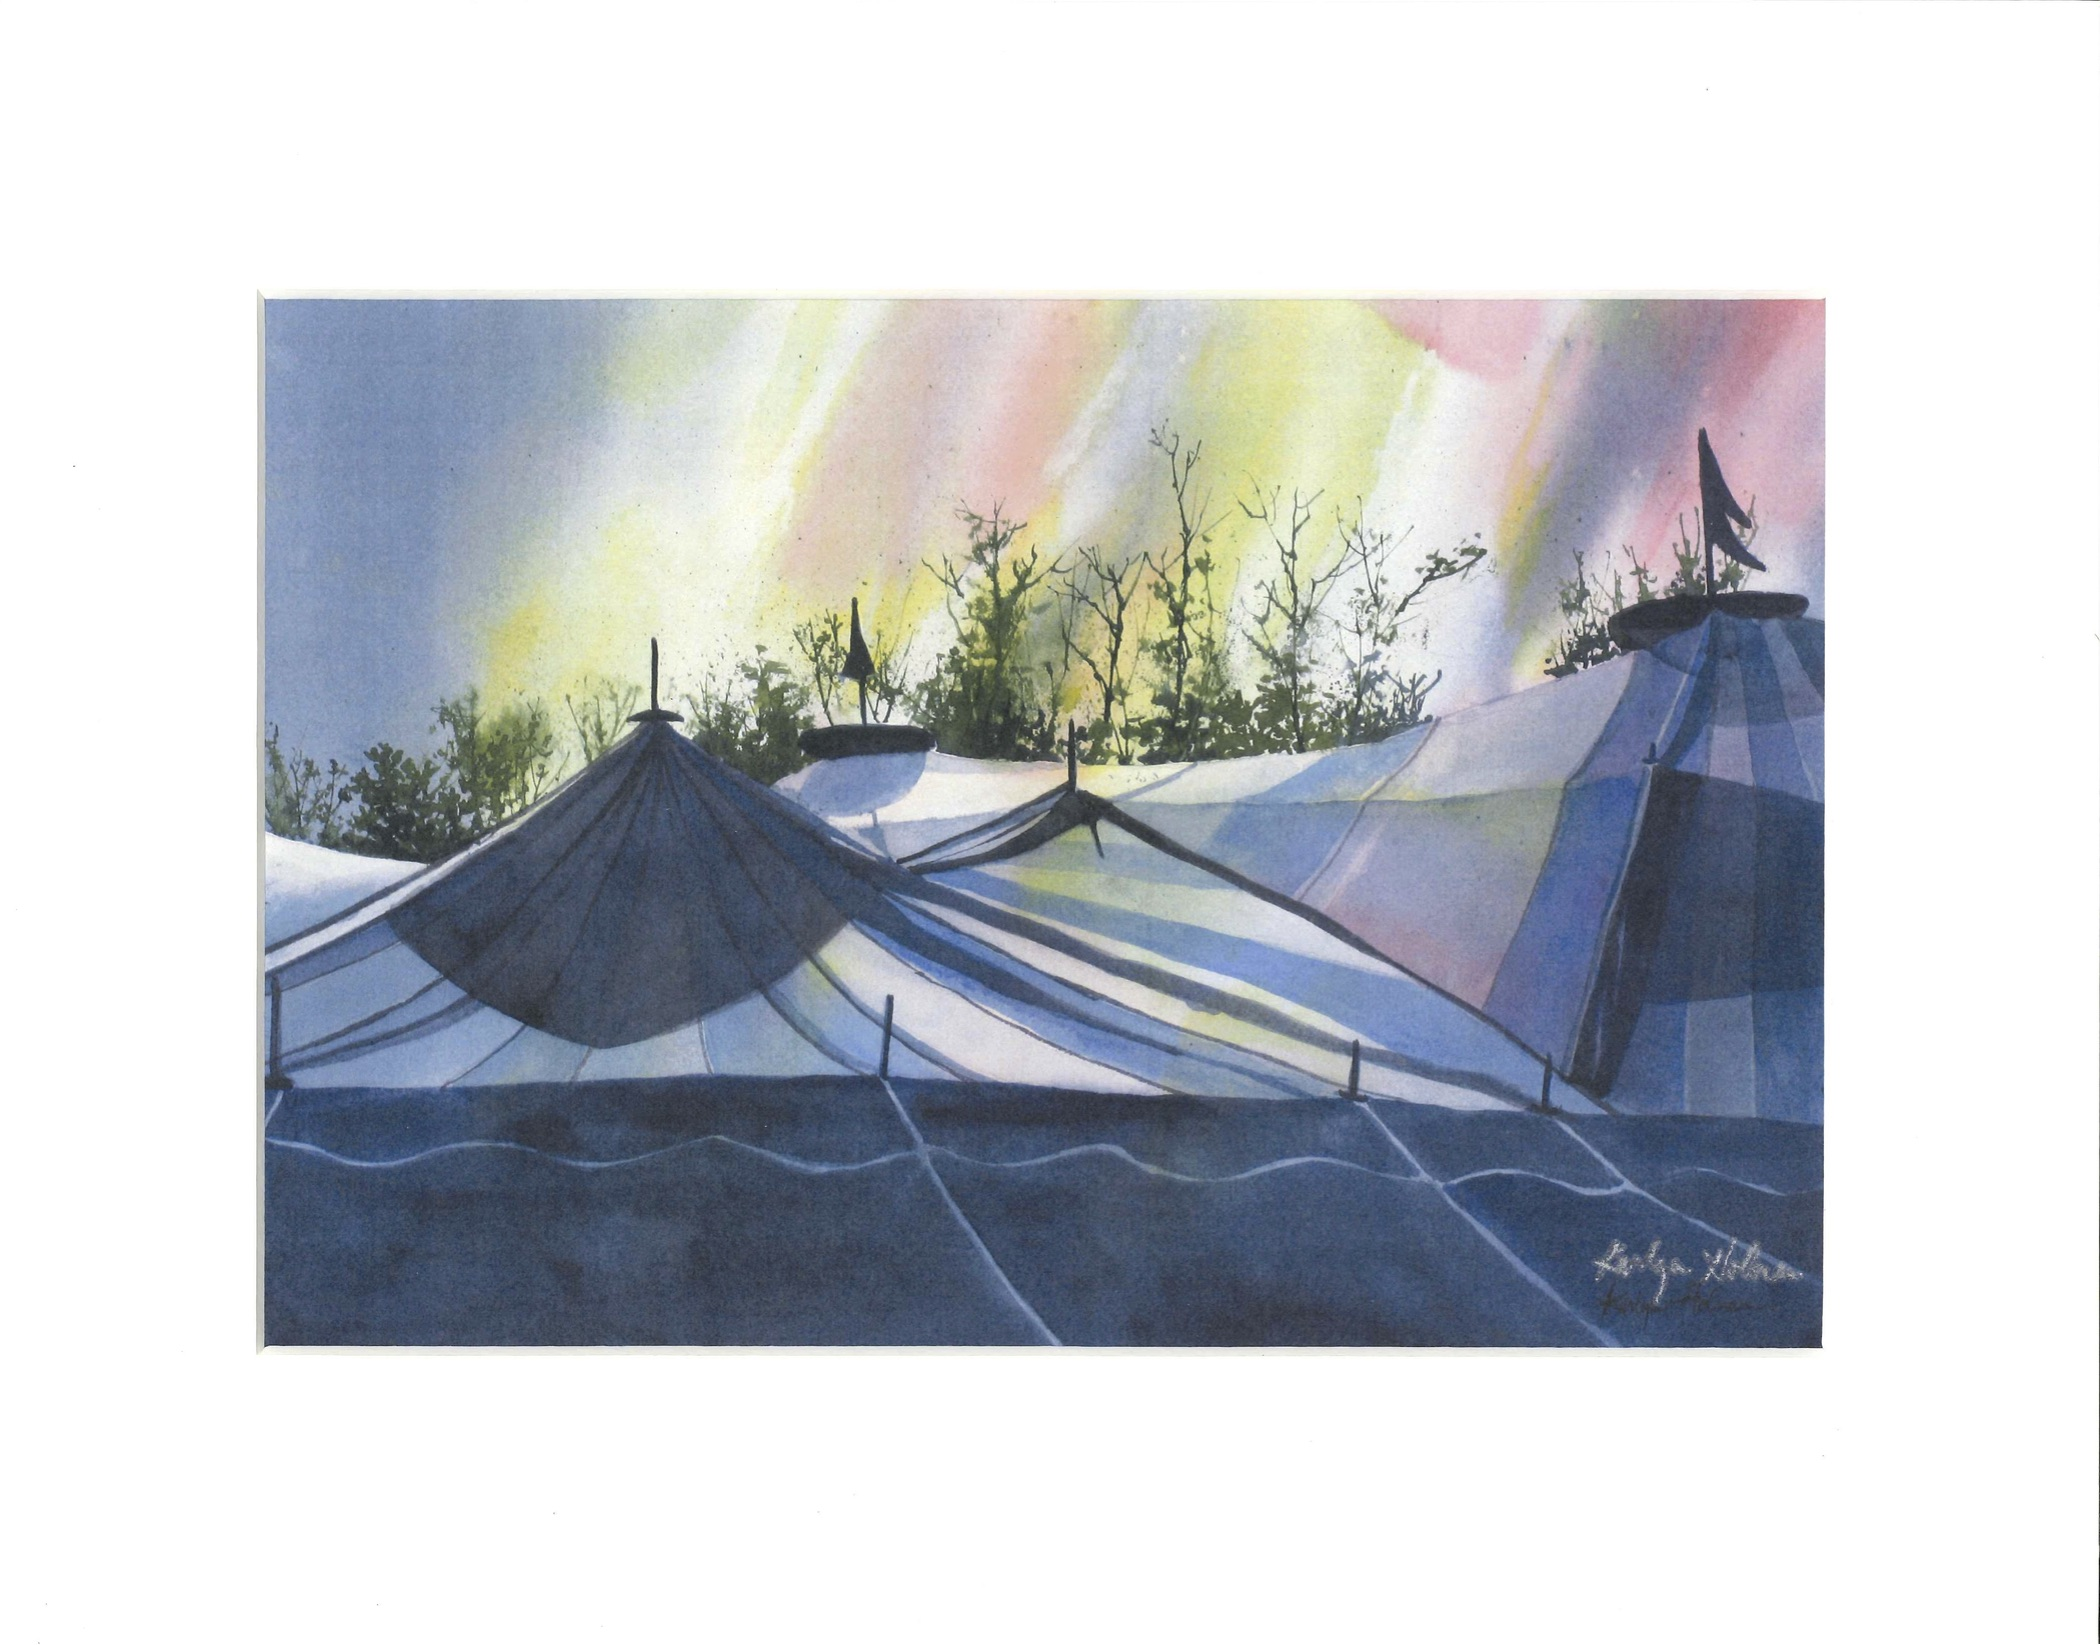 Big Top Chautauqua  11x14 Watercolor Print  sc 1 st  Big Top Chautauqua & Big Top Chautauqua